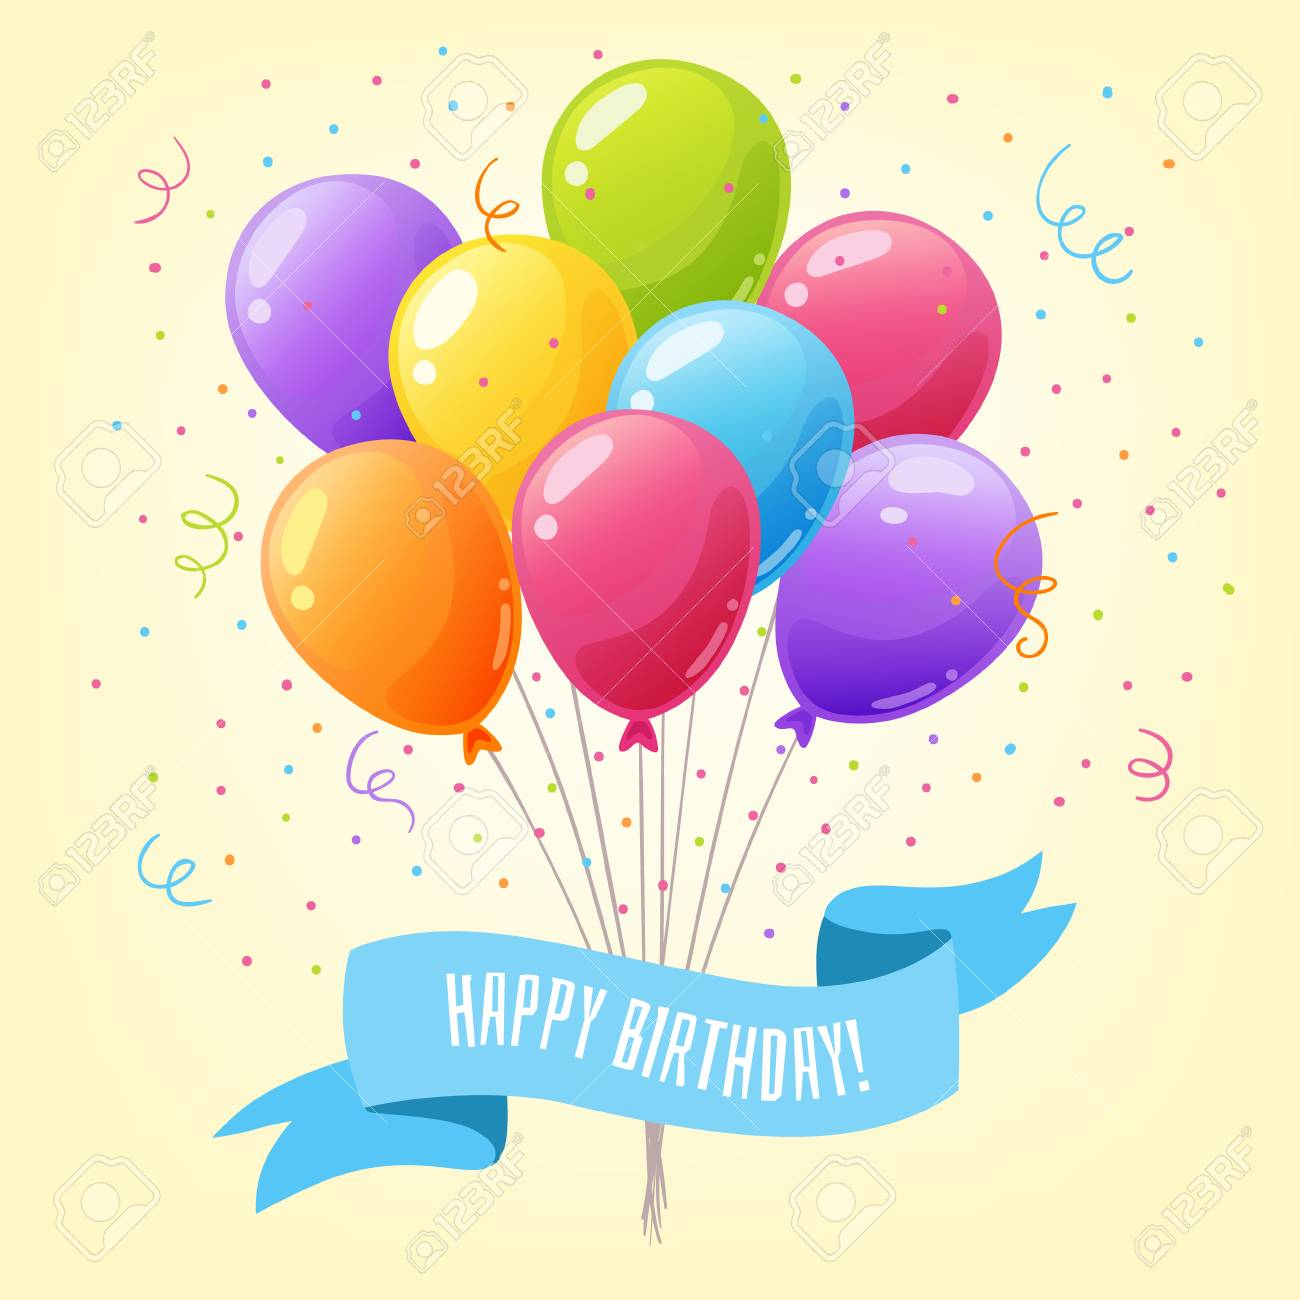 Colorful Balloons Happy Birthday Design Template For Greeting